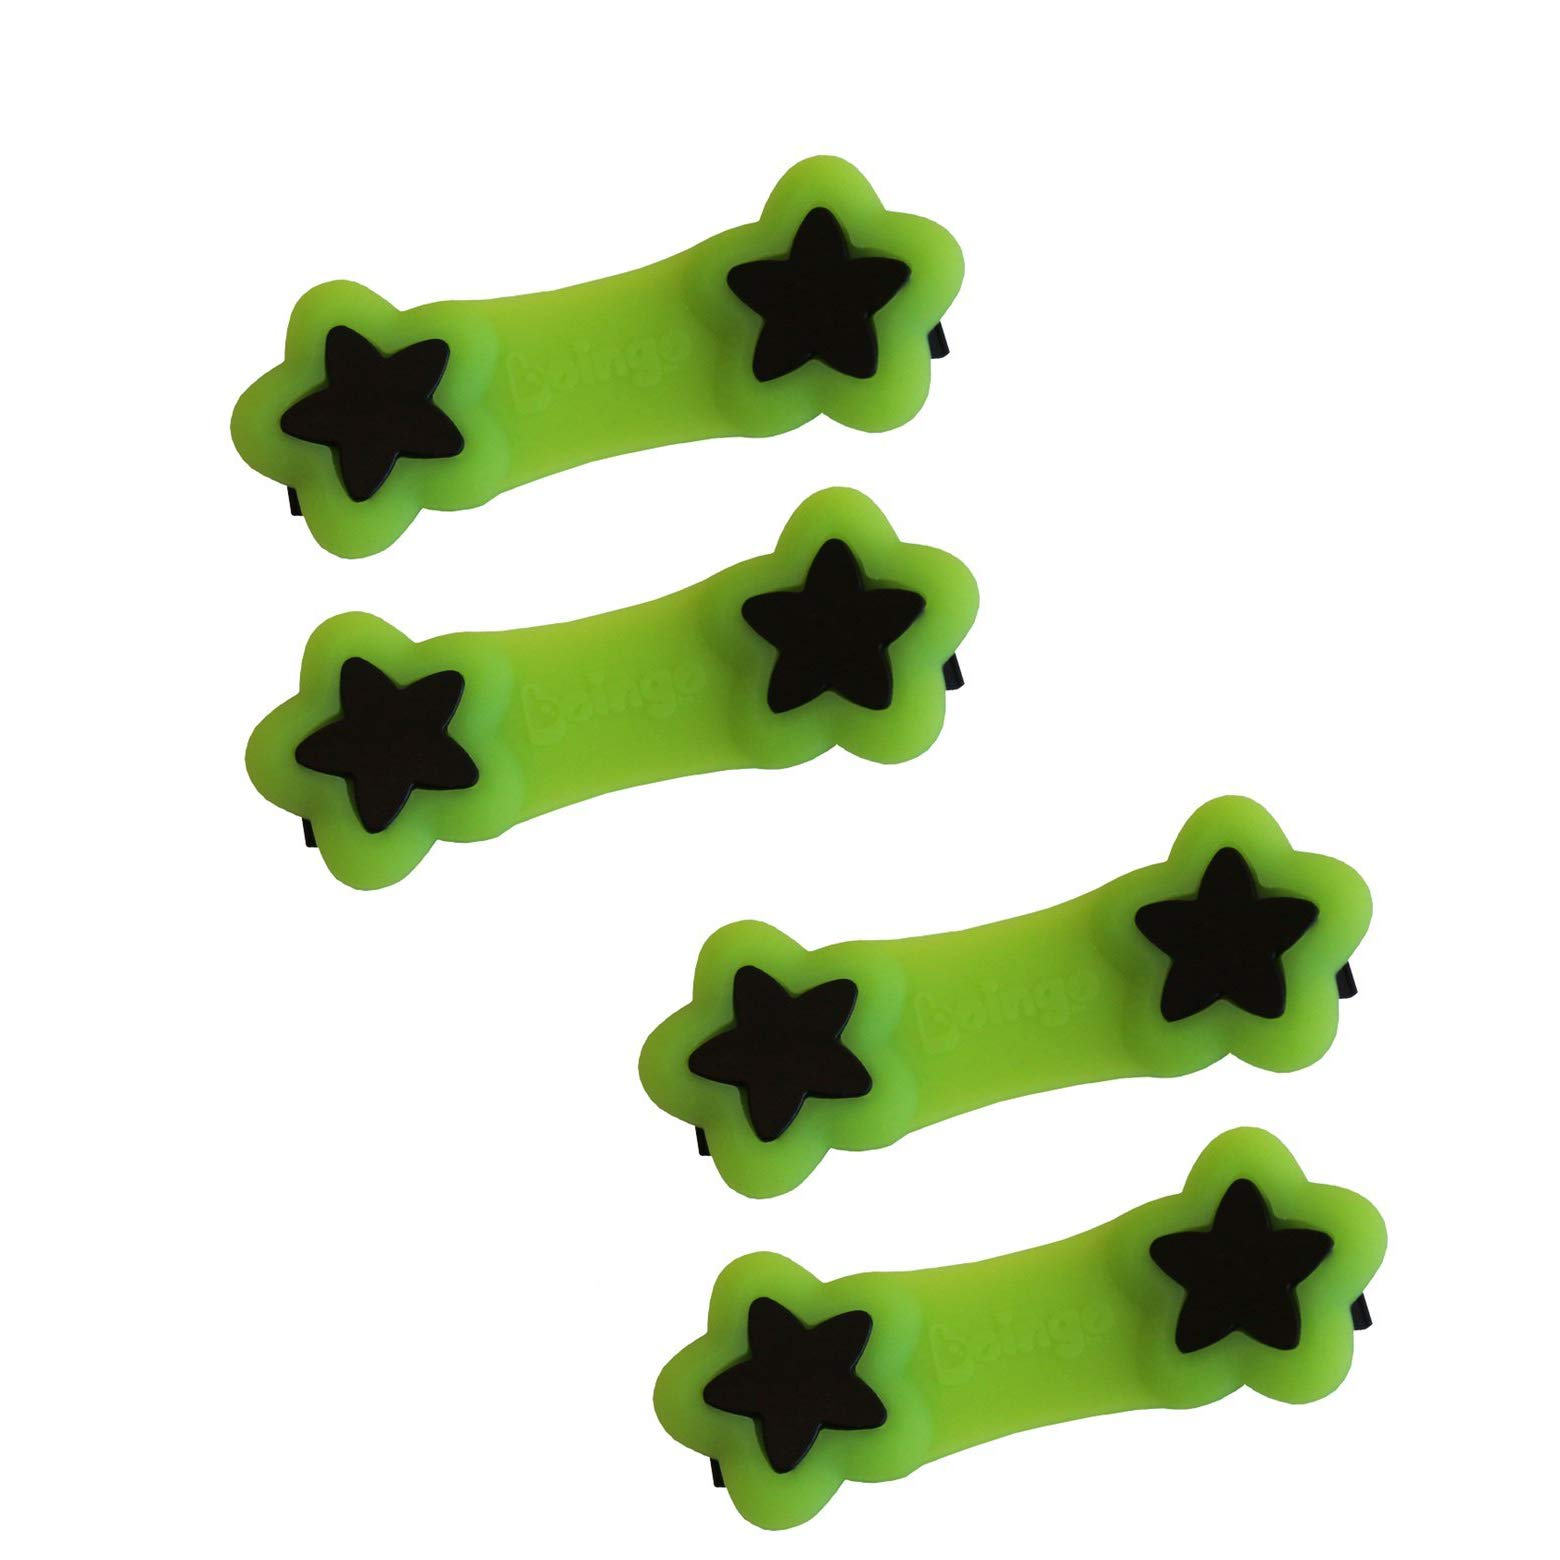 Boingo Baby Cloth Diaper Fastener - Green - 2 Pack by Boingo Baby